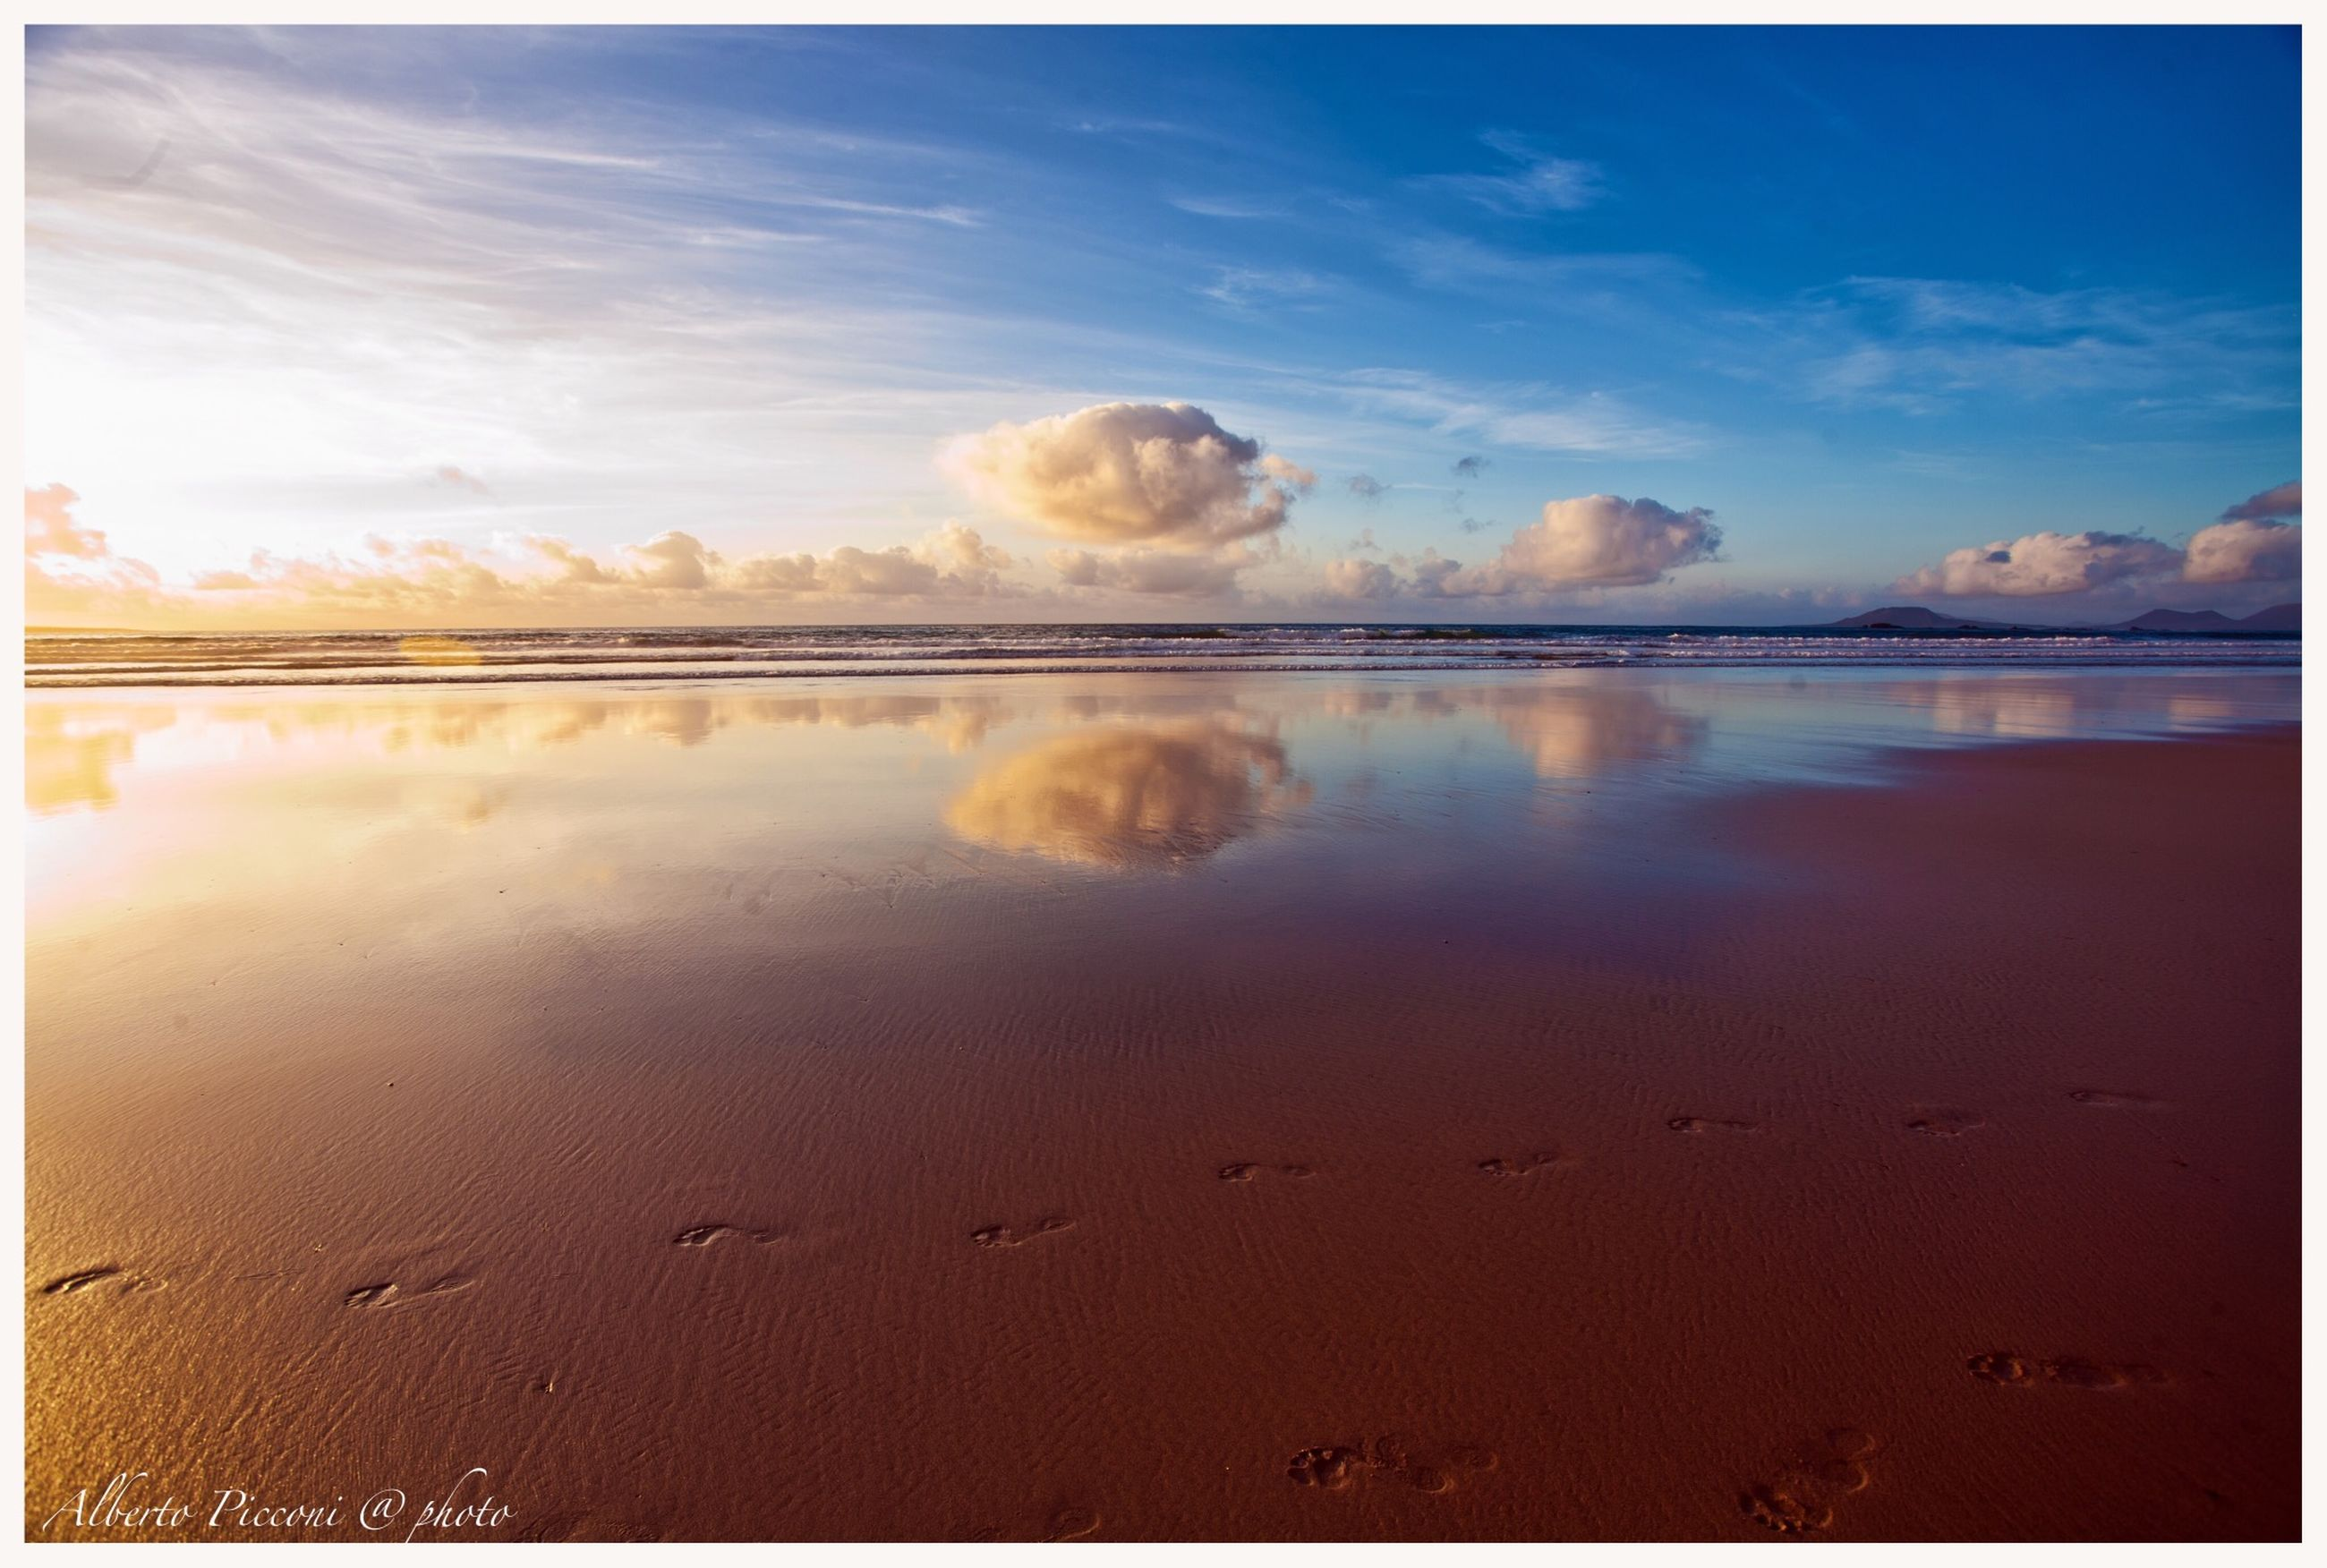 water, animal themes, transfer print, sky, auto post production filter, beach, sand, one animal, tranquil scene, nature, tranquility, shore, sea, scenics, beauty in nature, cloud - sky, dog, reflection, outdoors, domestic animals